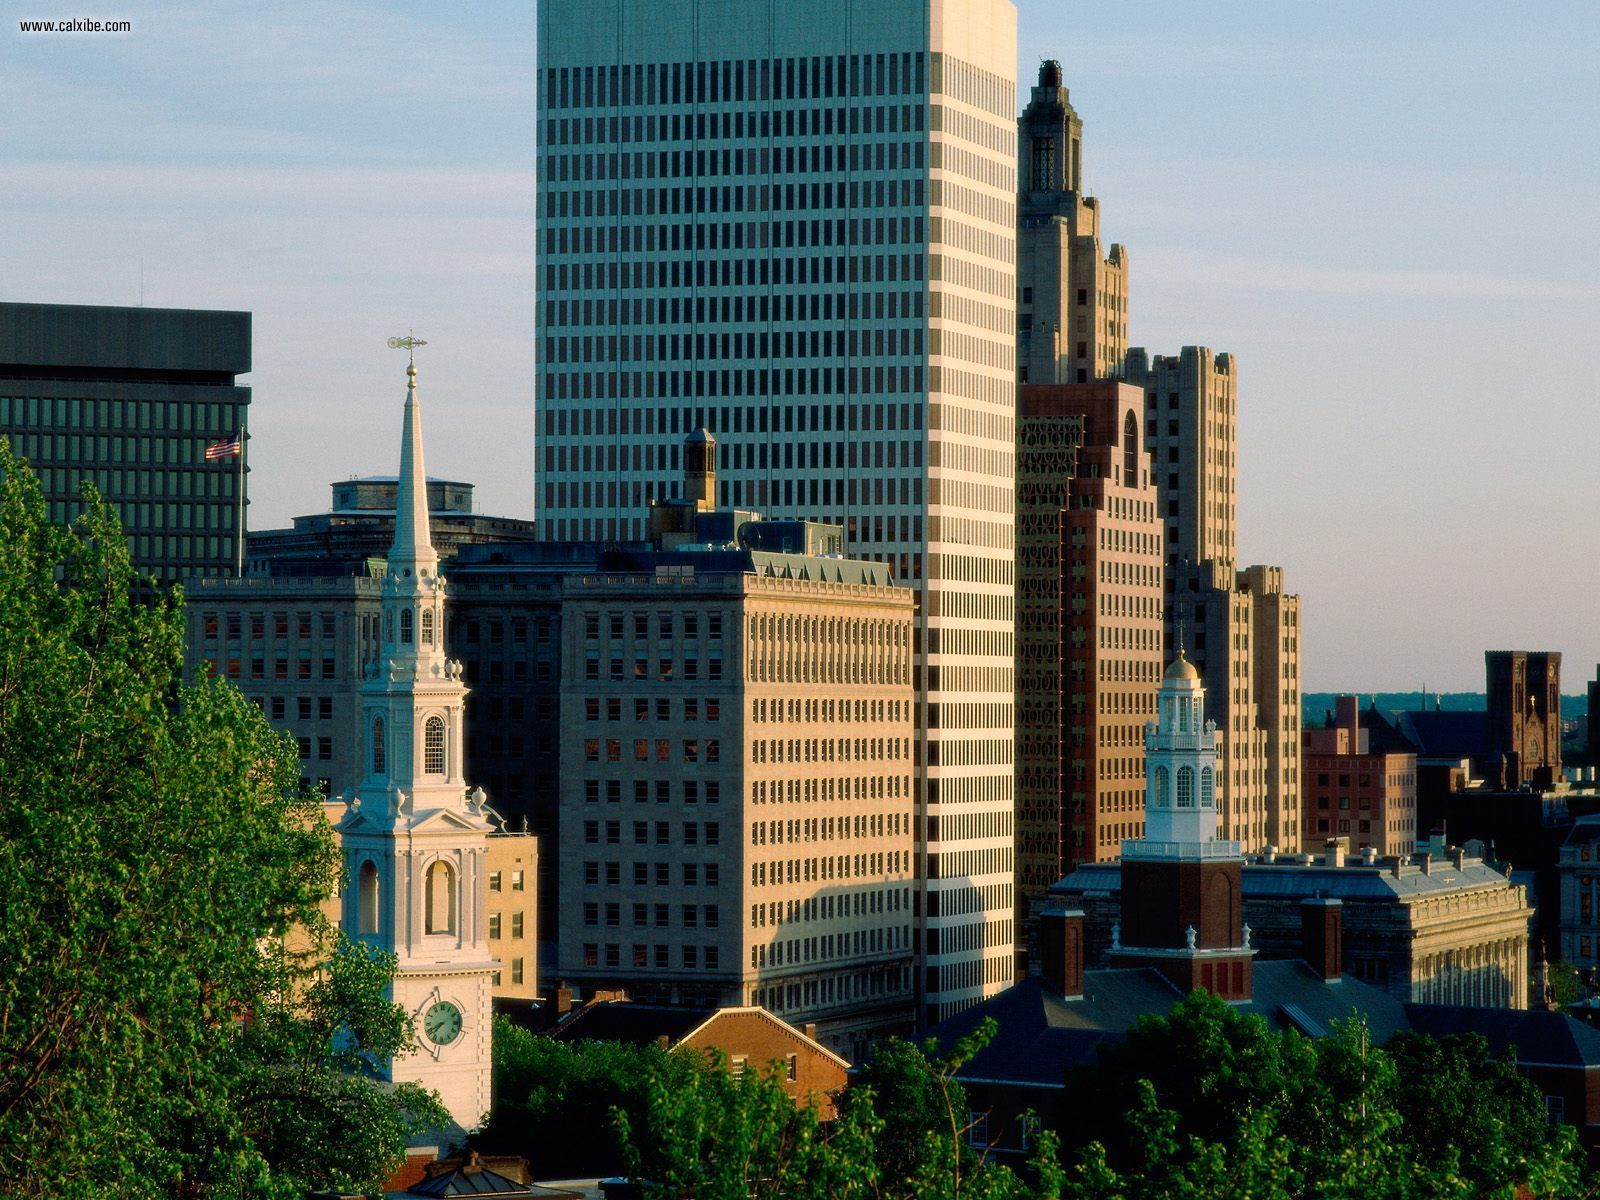 Cheap Flights To Providence (PVD) - Jetsetz.com